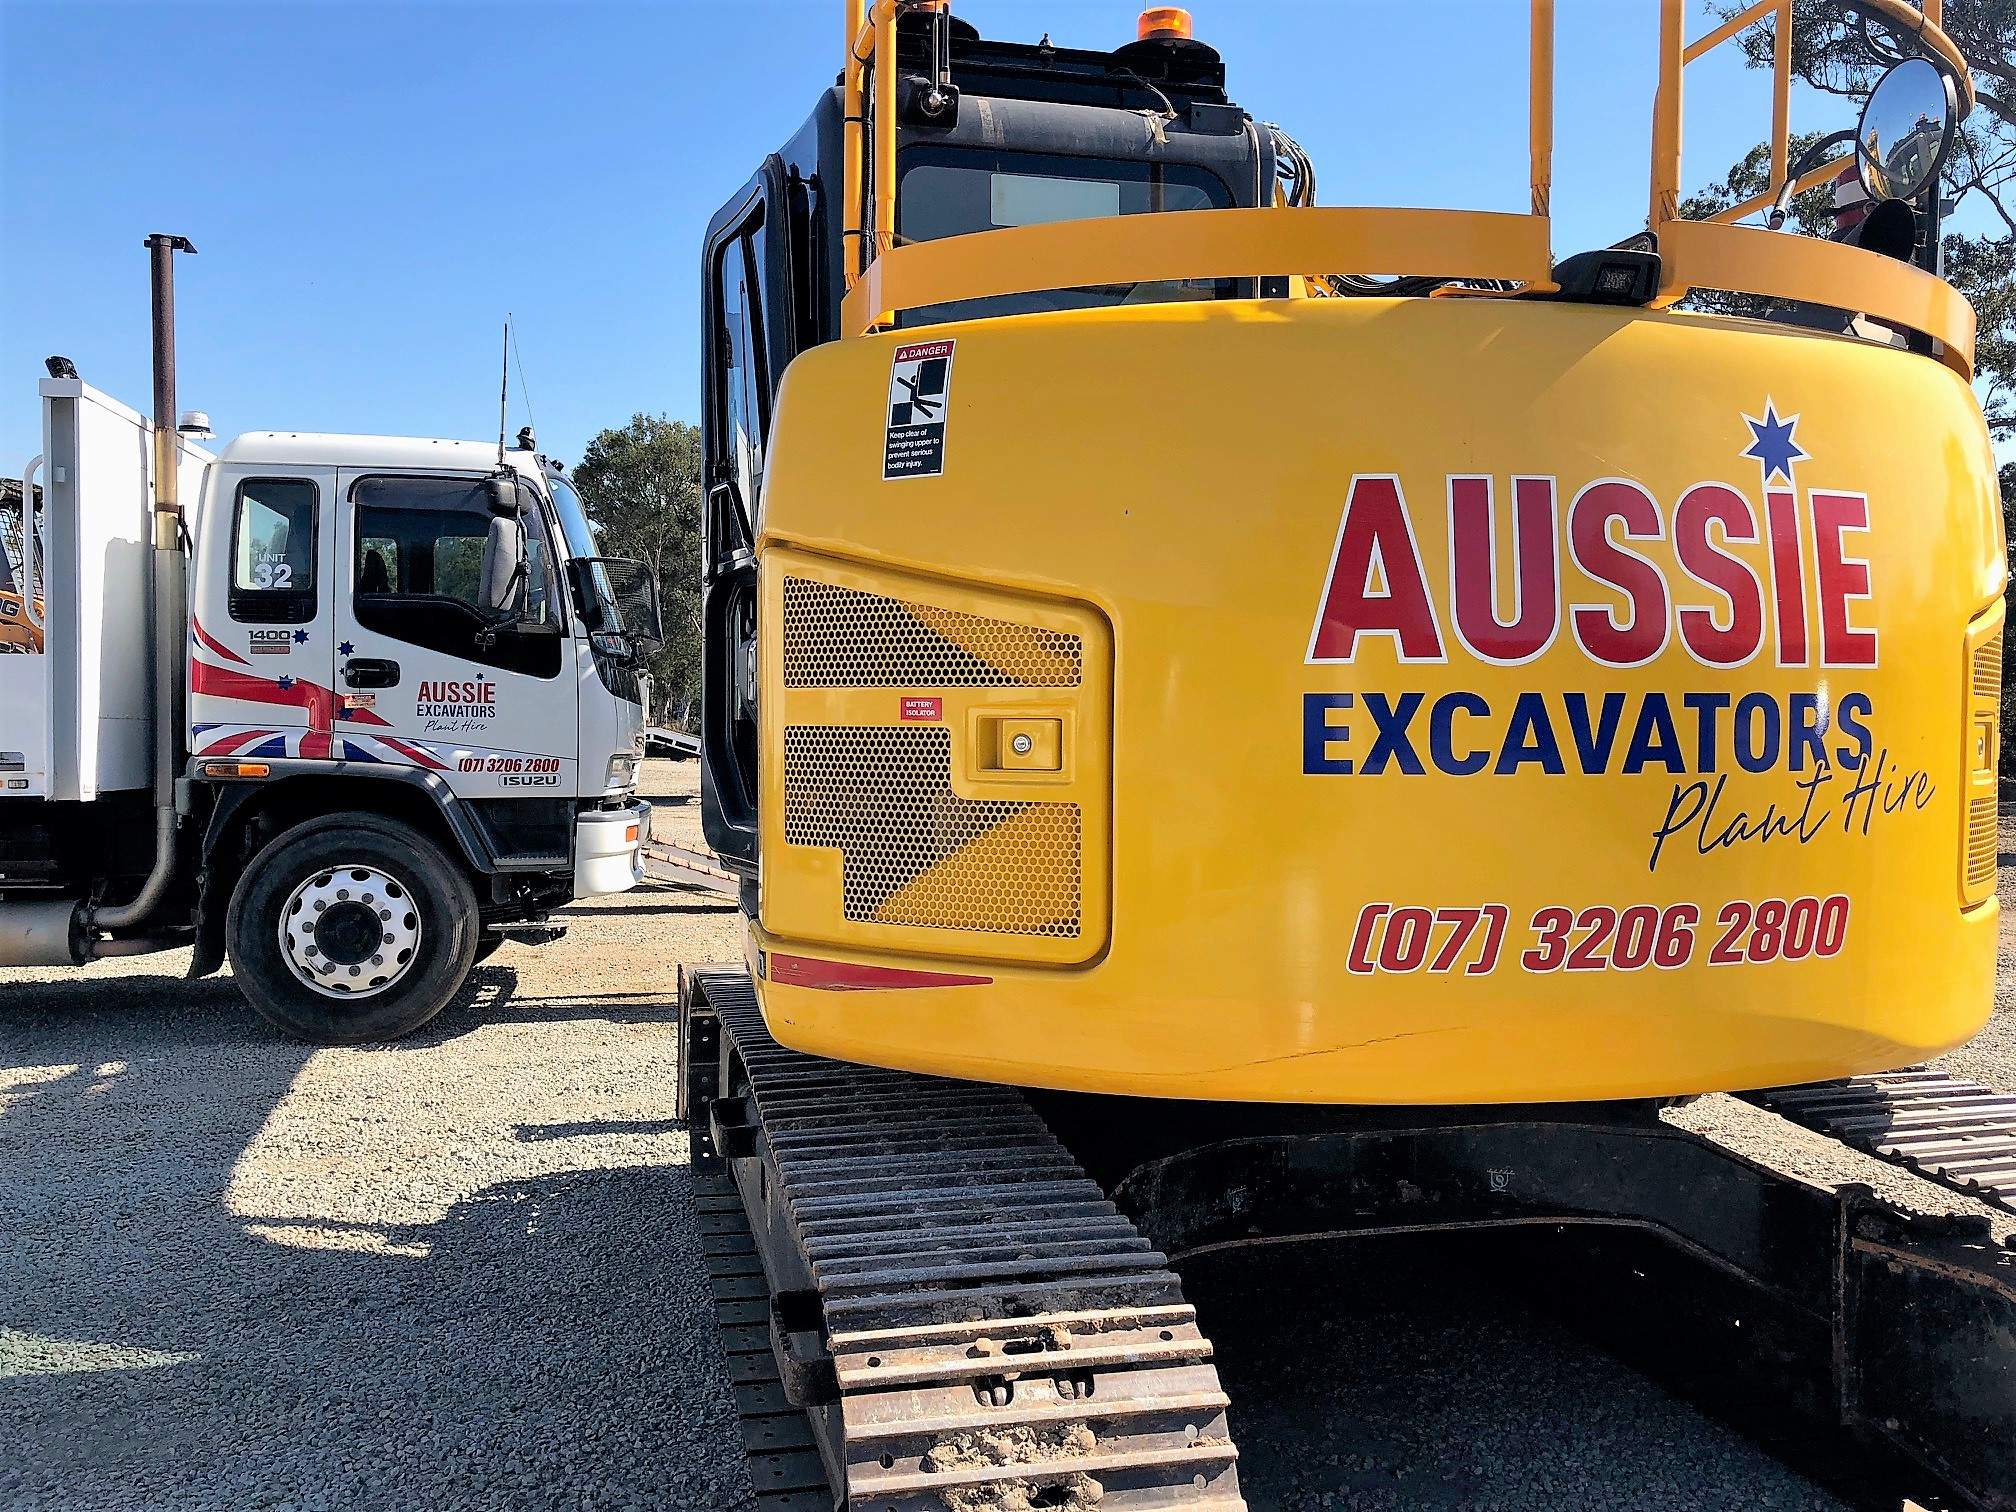 Aussie Excavators Plant Hire in Brisbane / Prices Excavators Bobcats